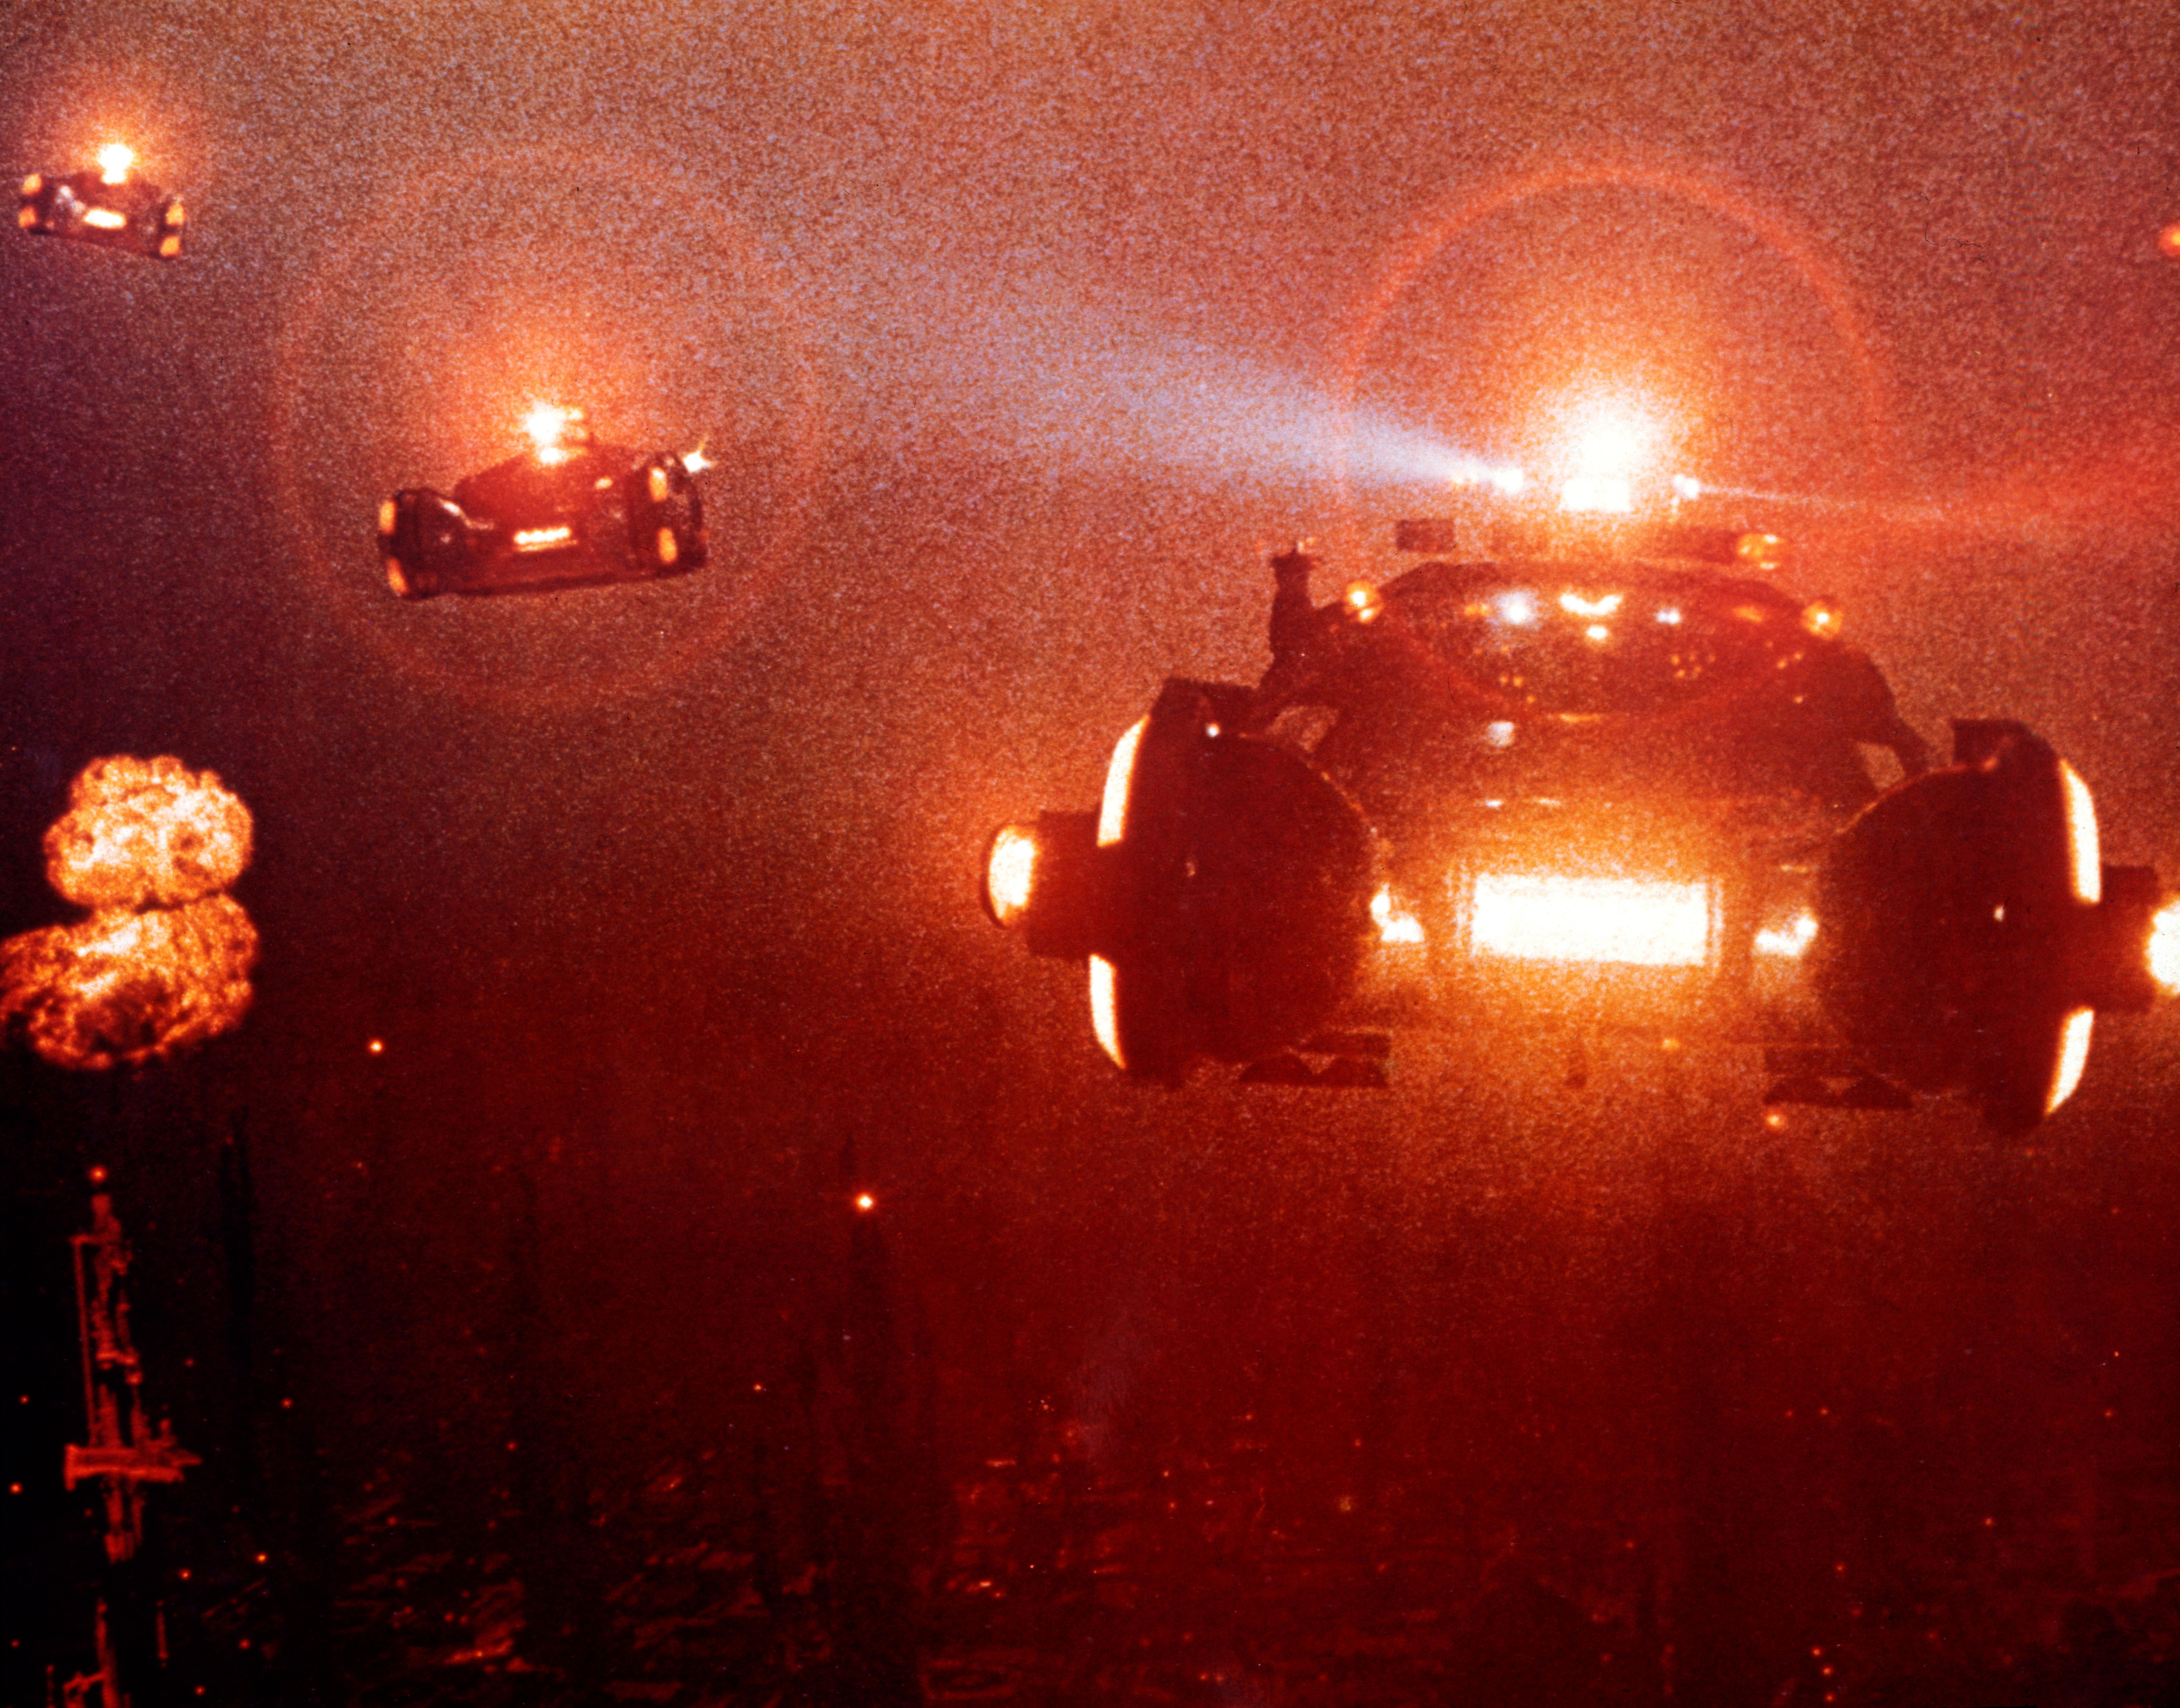 Blade Runner (1982): Three-dimensional mobility as imagined by Syd Mead.